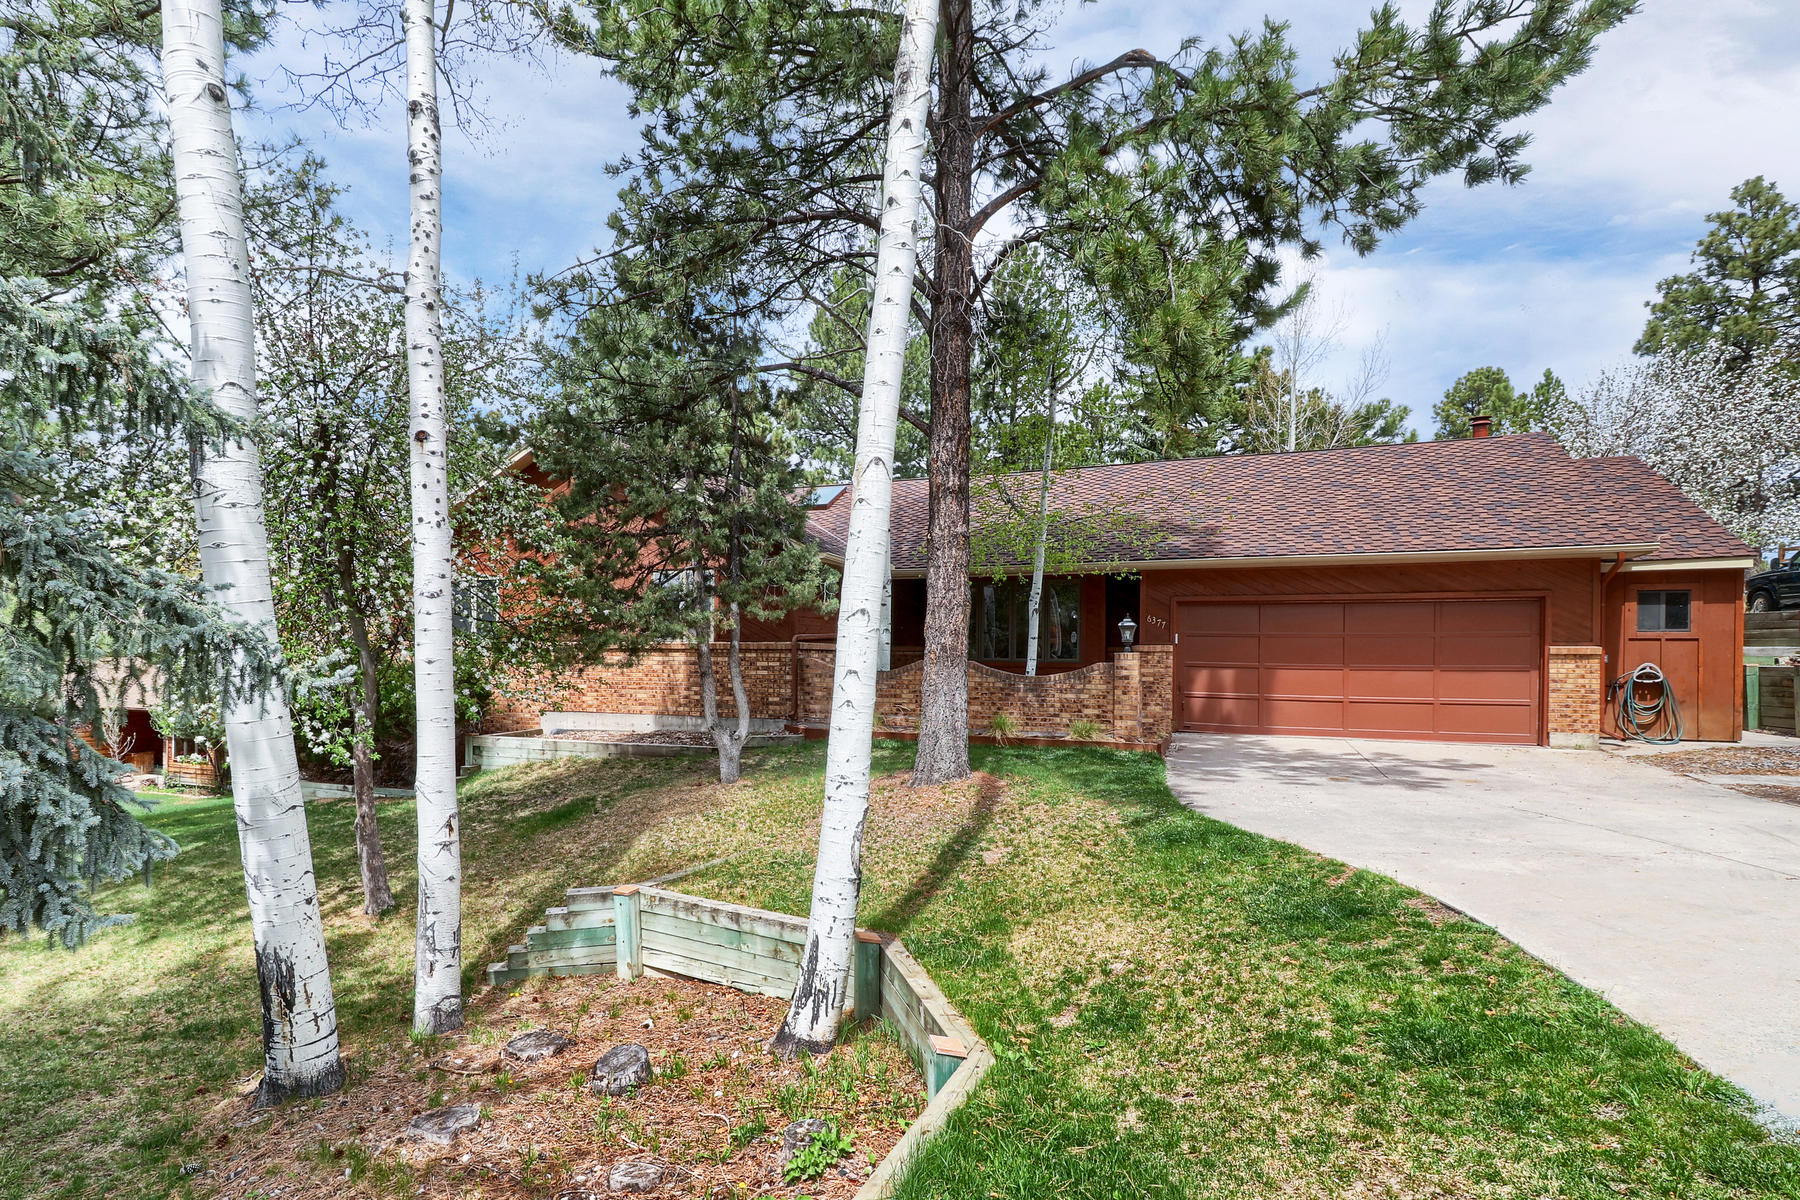 Single Family Home for Active at Social Spaces and Simple Pleasures 6377 Powell Rd Parker, Colorado 80134 United States